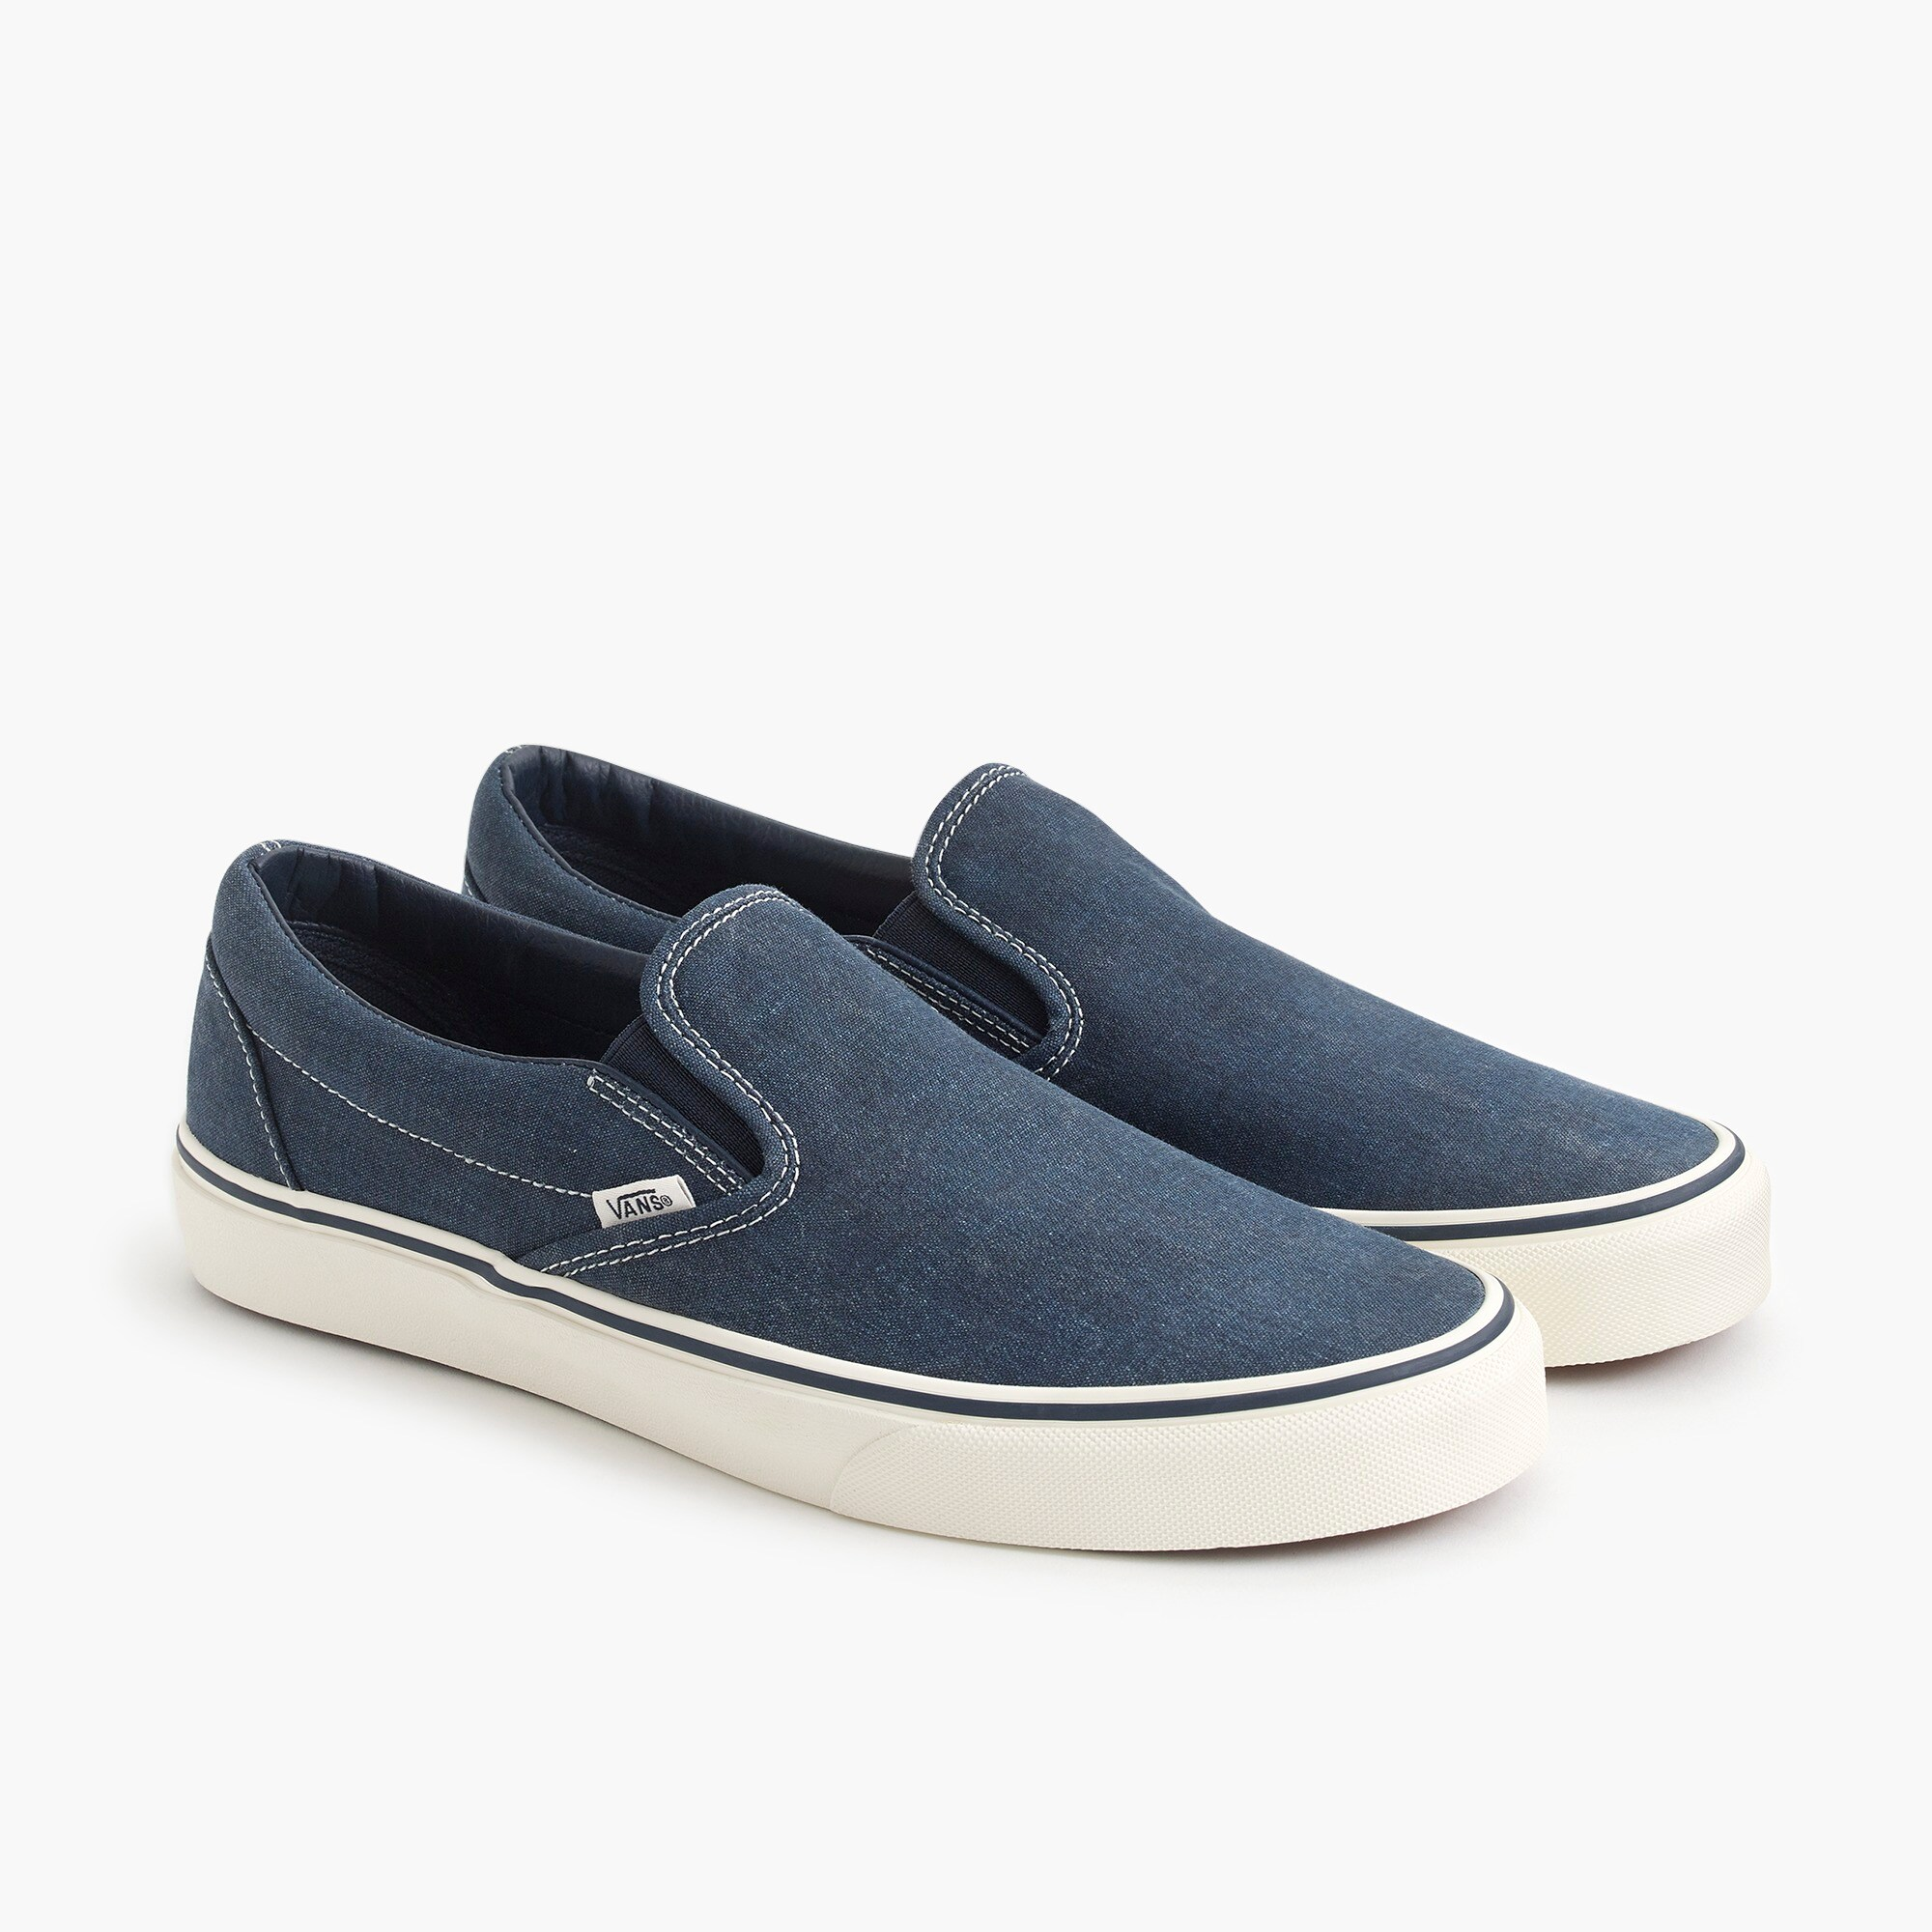 mens Vans® for J.Crew washed canvas classic slip-on sneakers